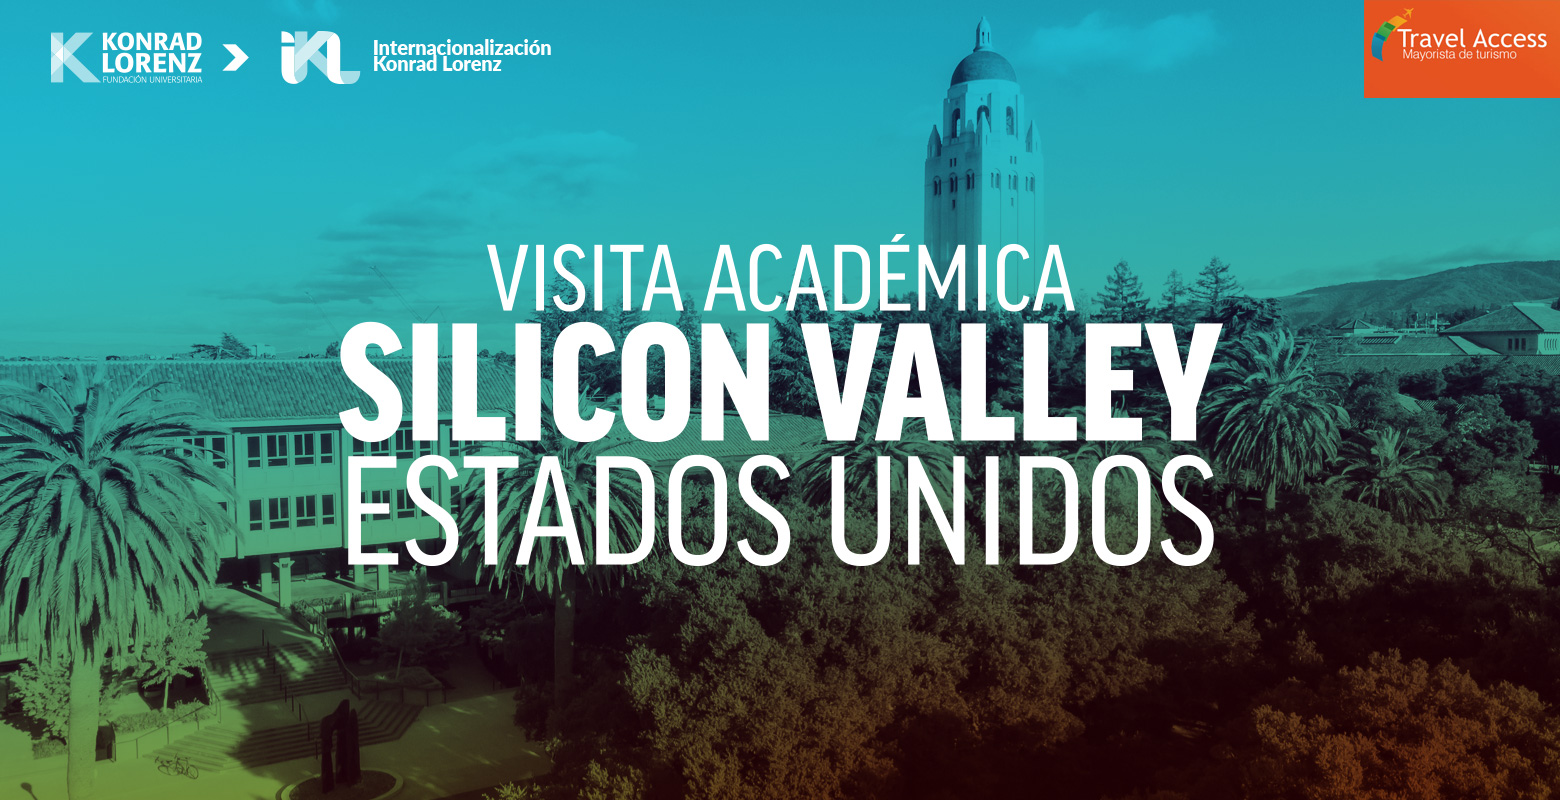 Silicon Valley ¡Te espera!